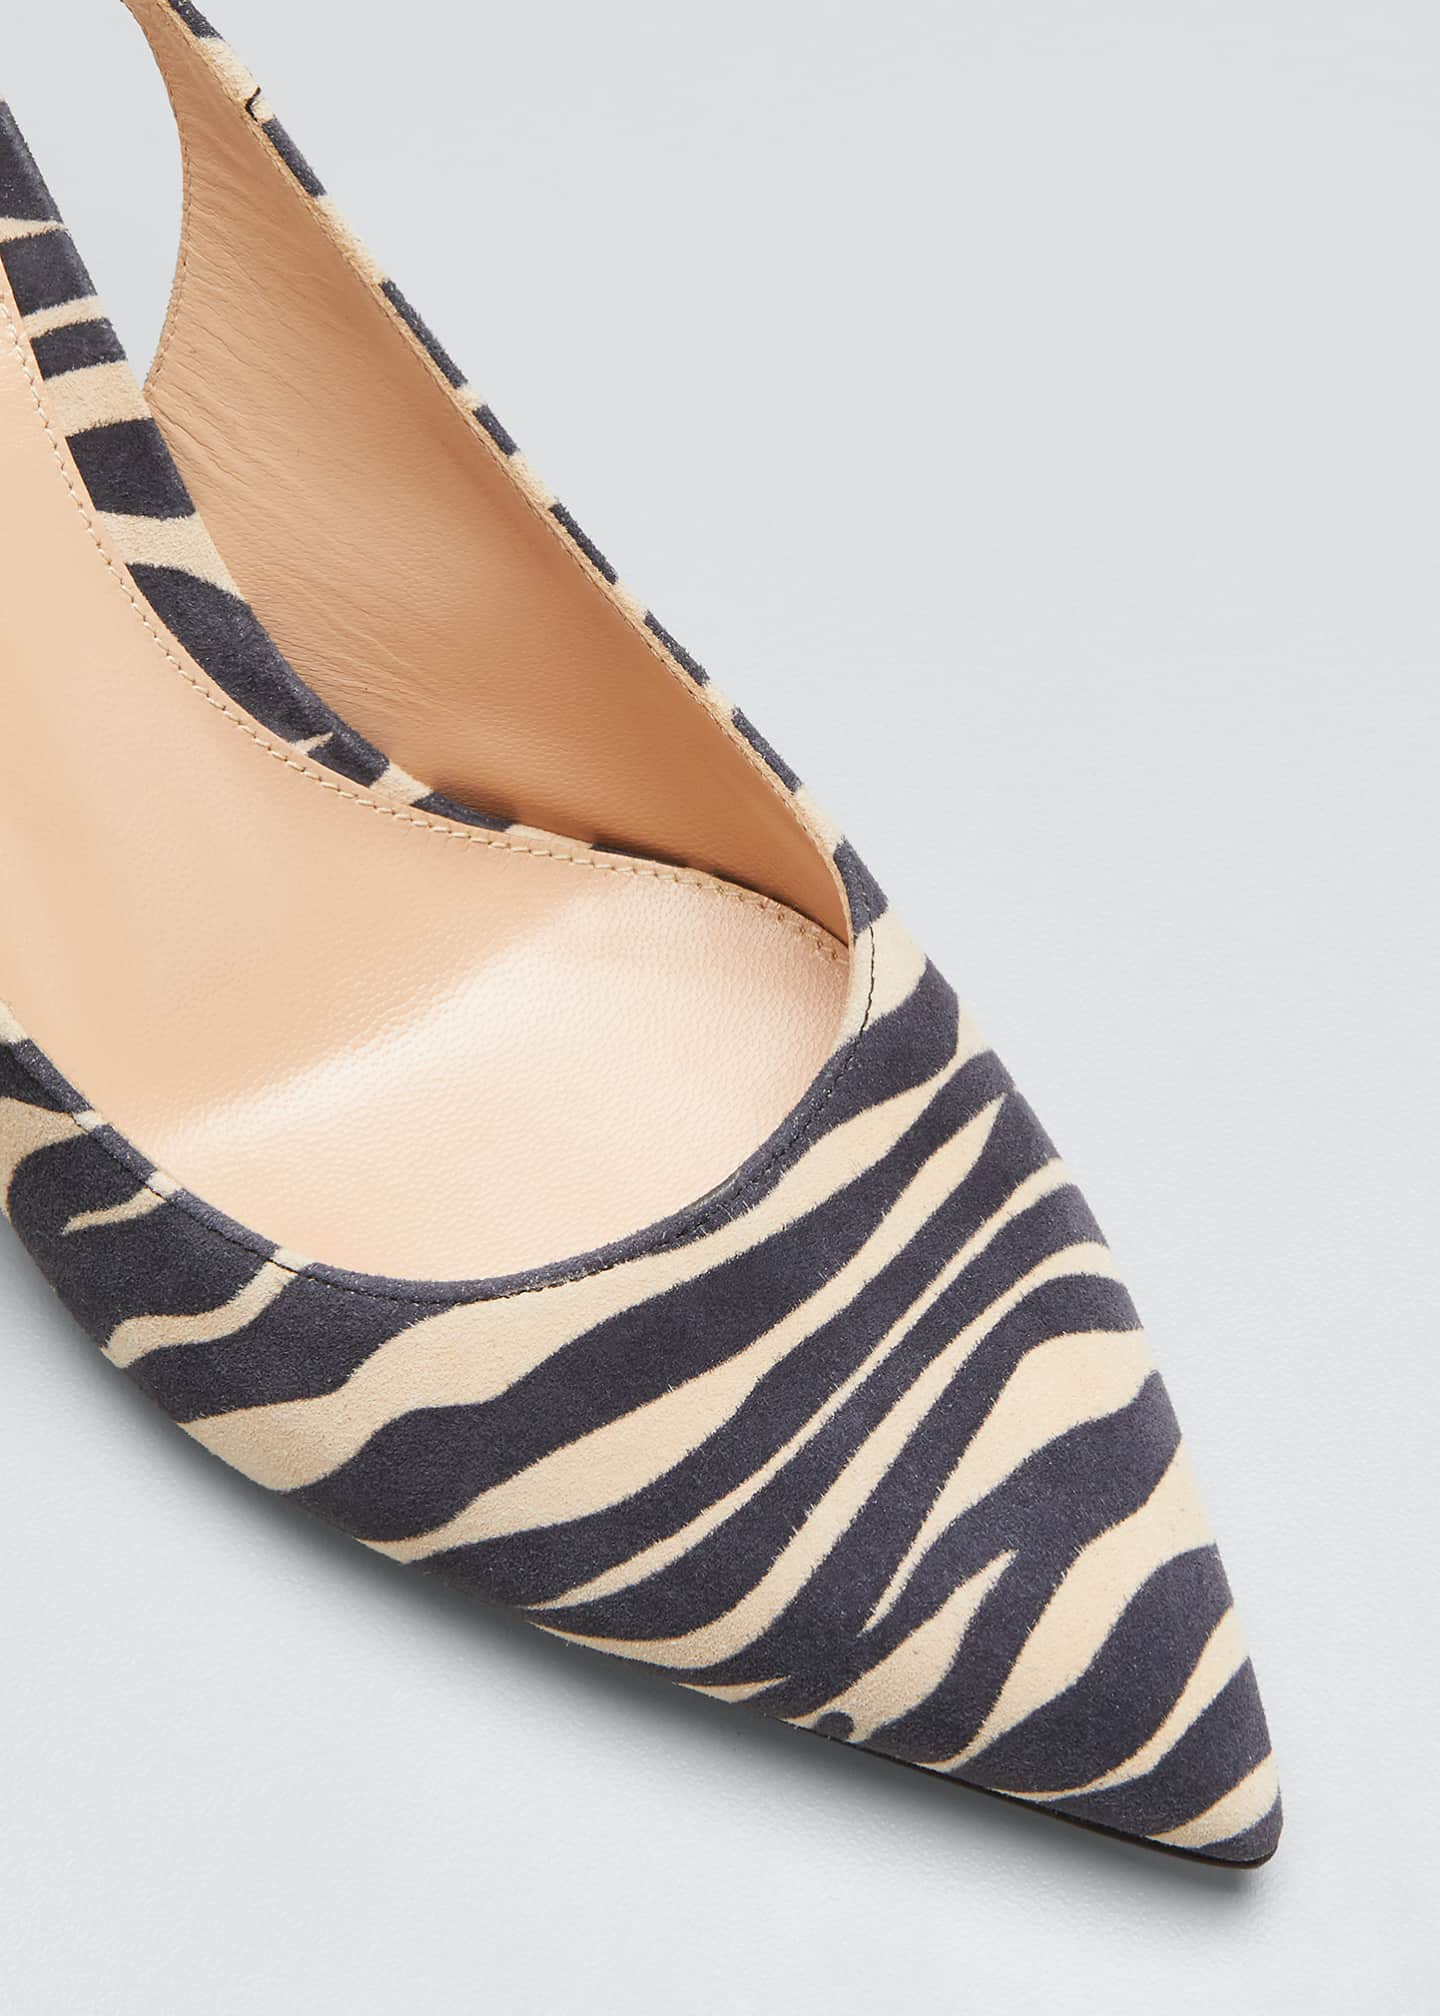 Image 3 of 3: Zebra-Print Suede Ankle-Tie Pumps